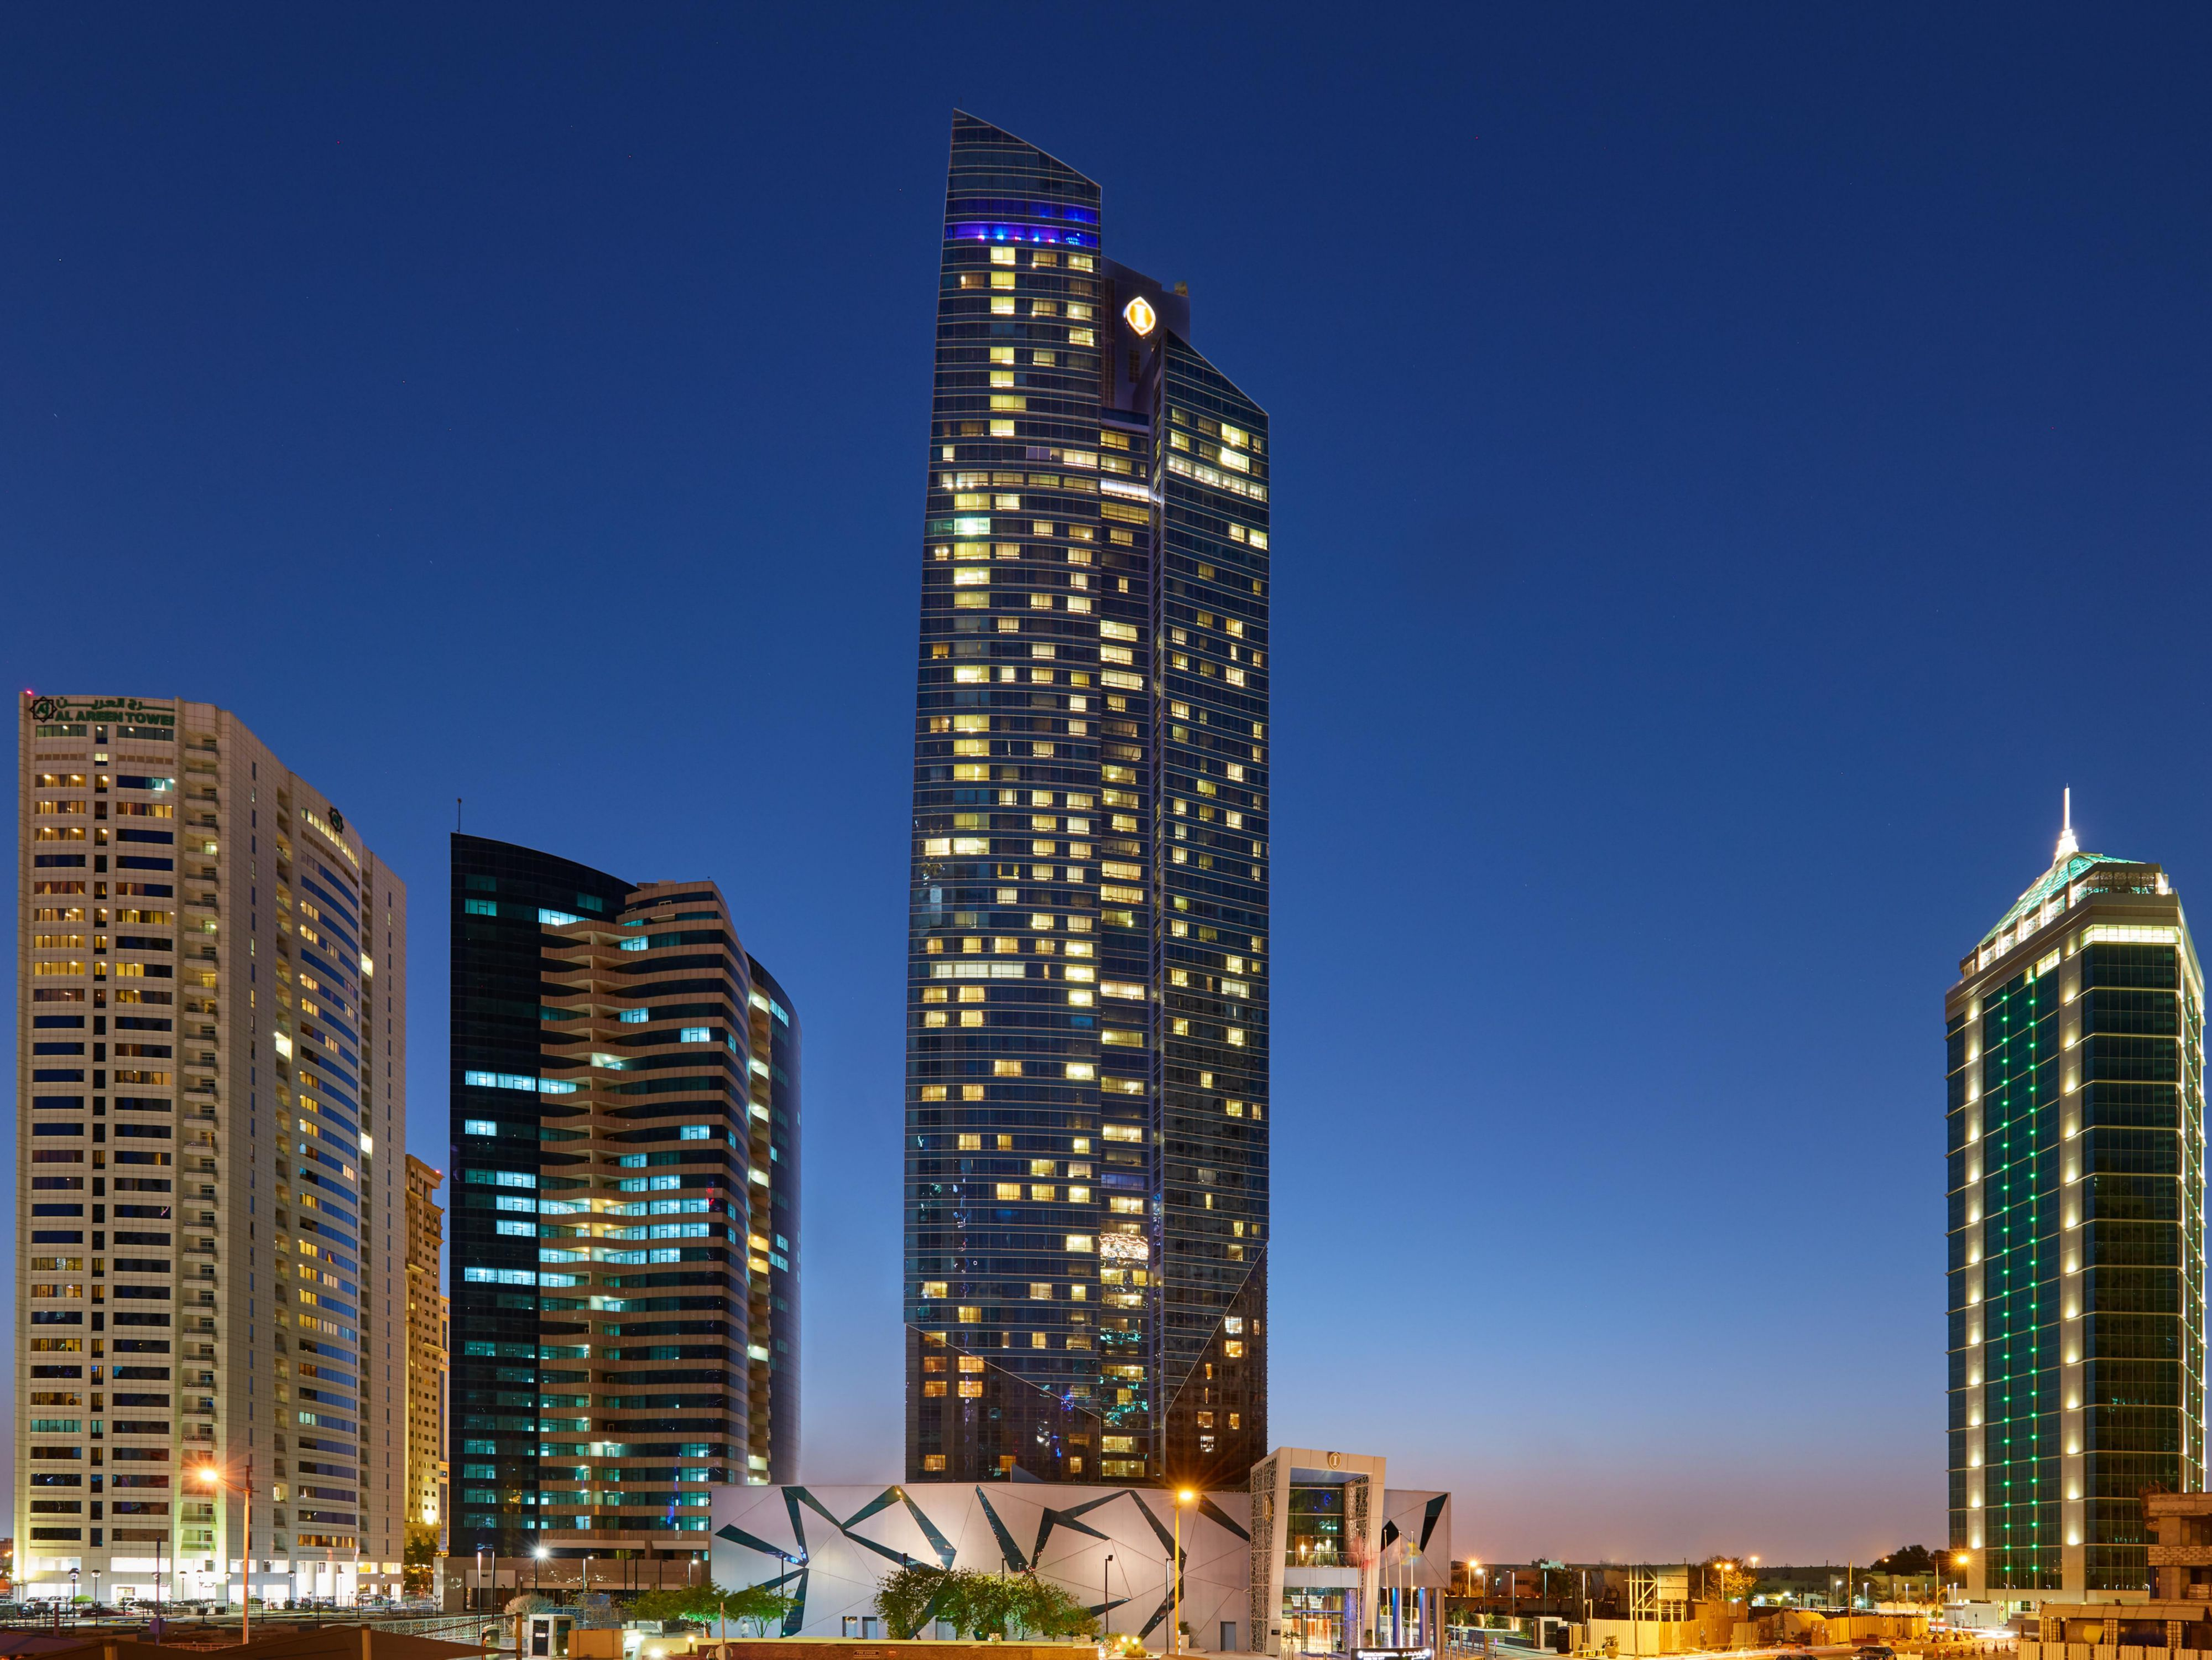 Hotels in Doha | Best places to stay in Doha, Qatar by IHG